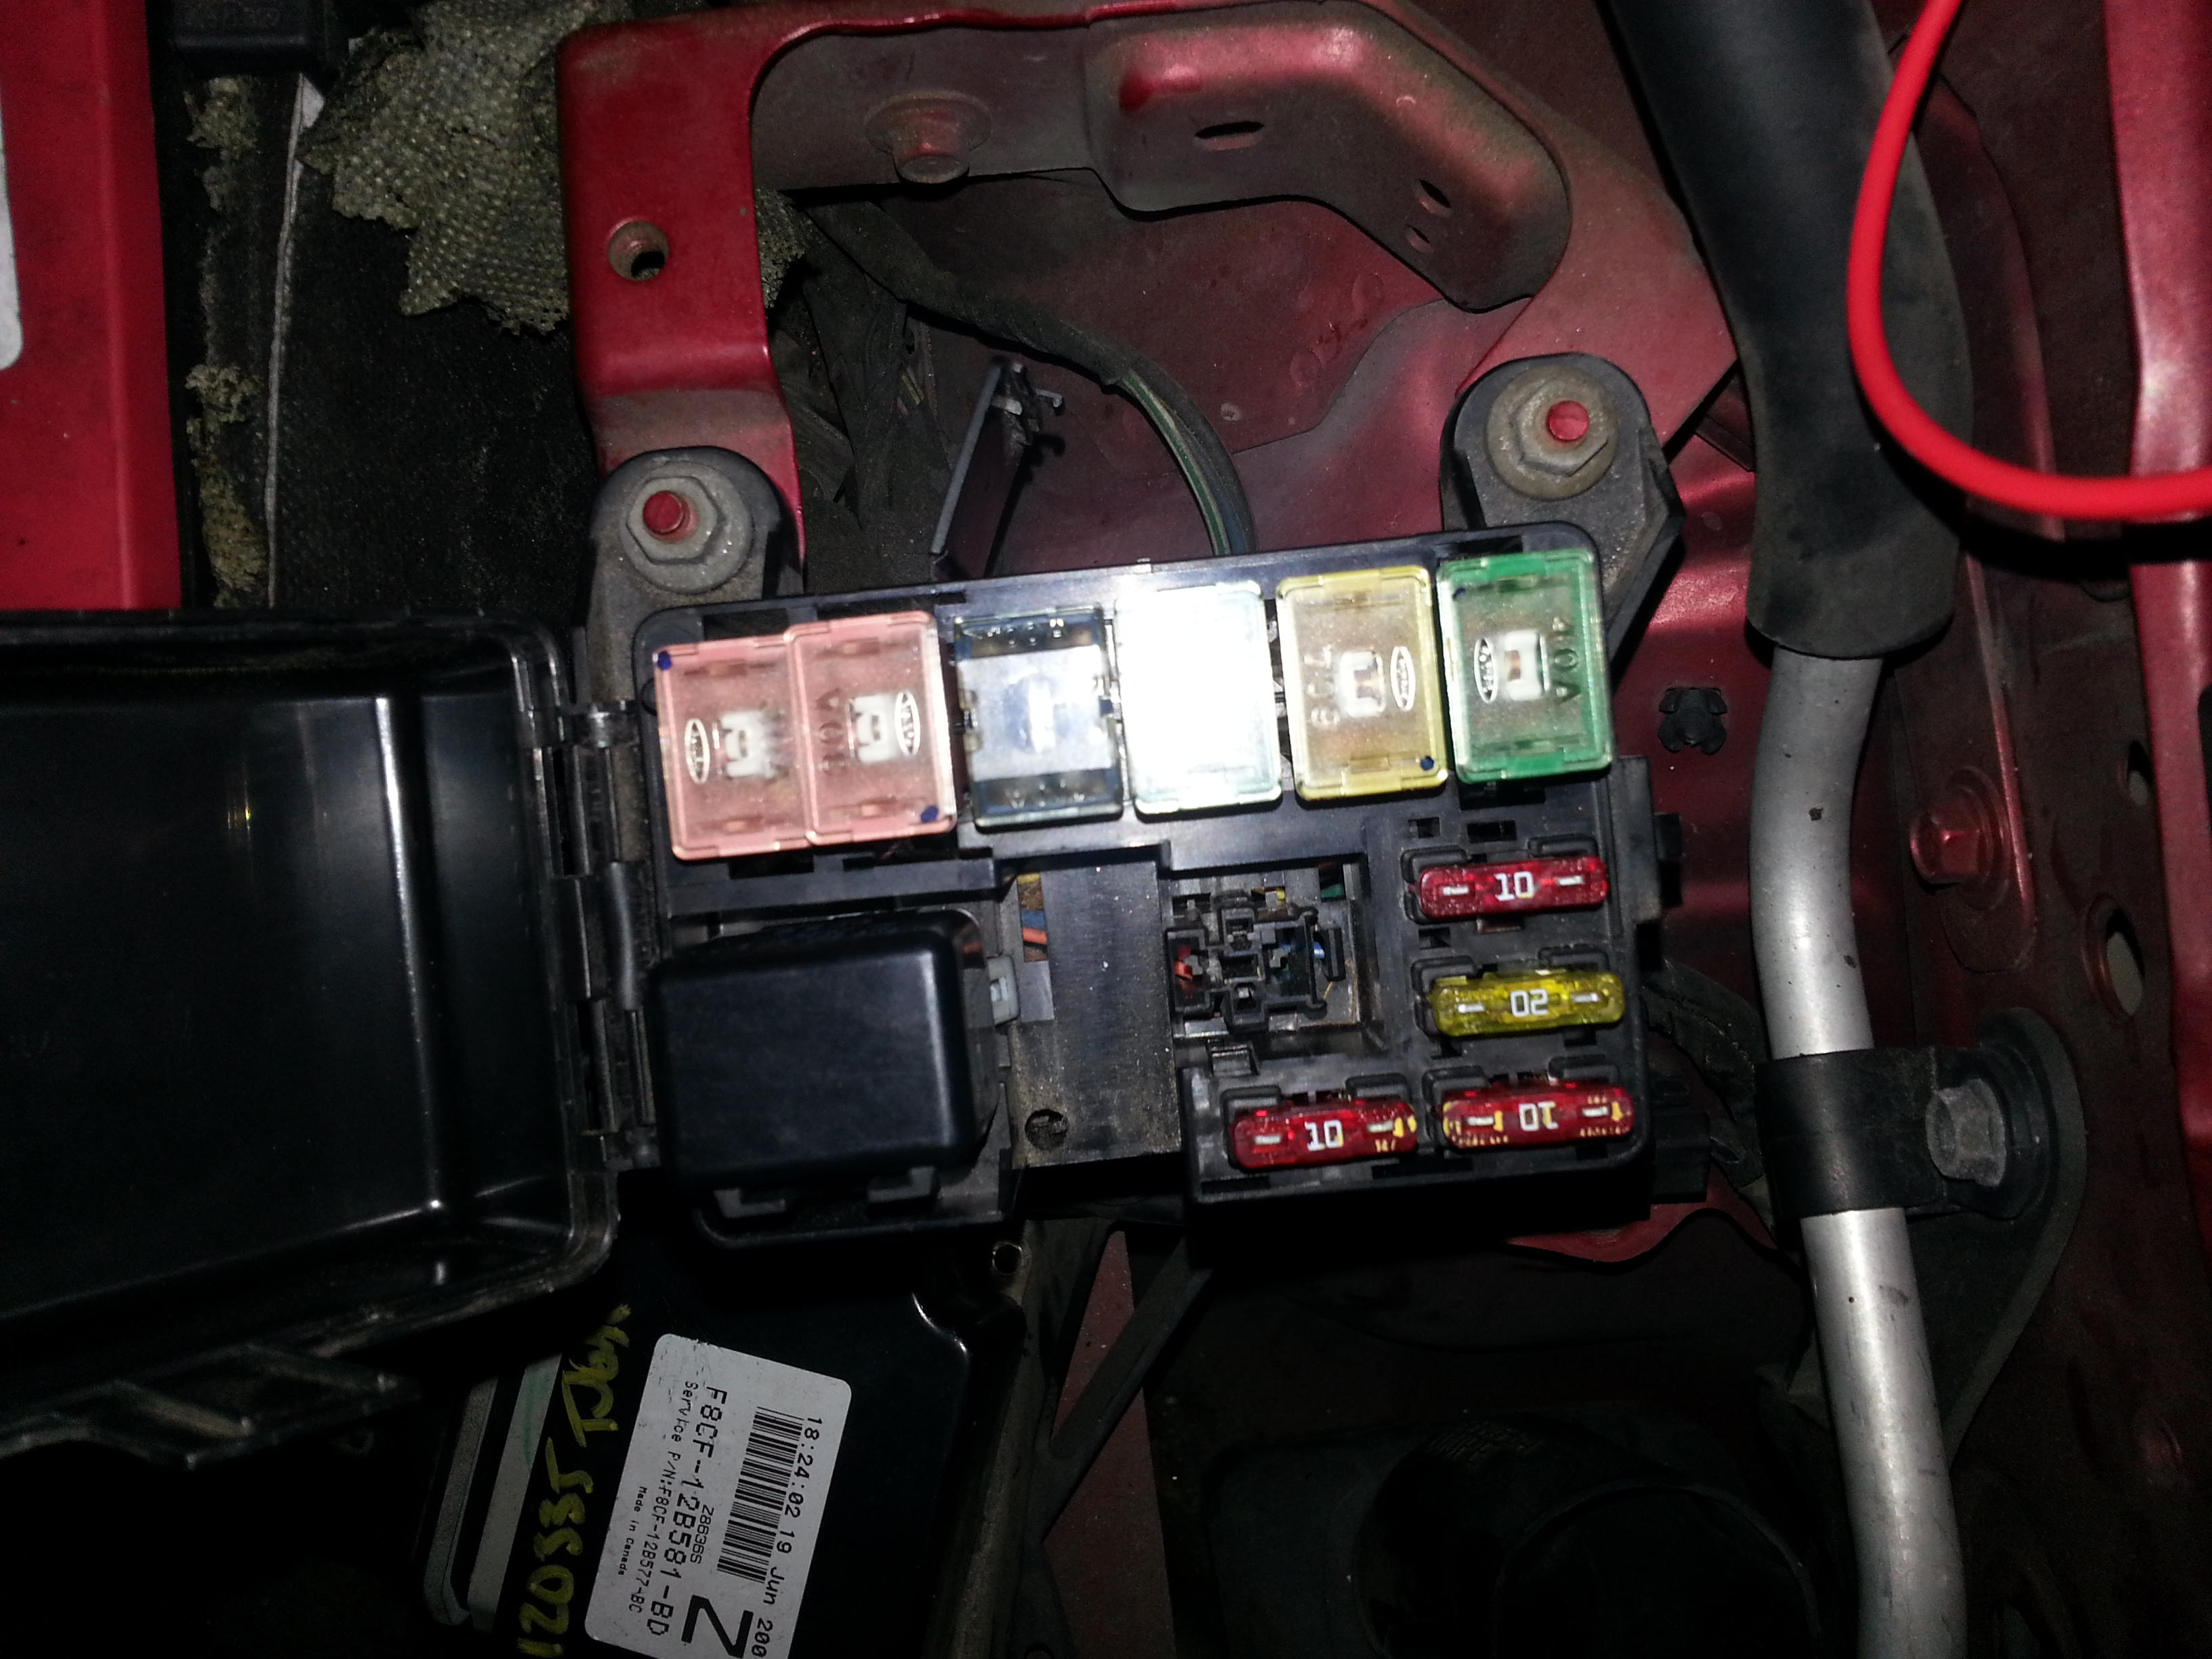 Fuse box inside engine